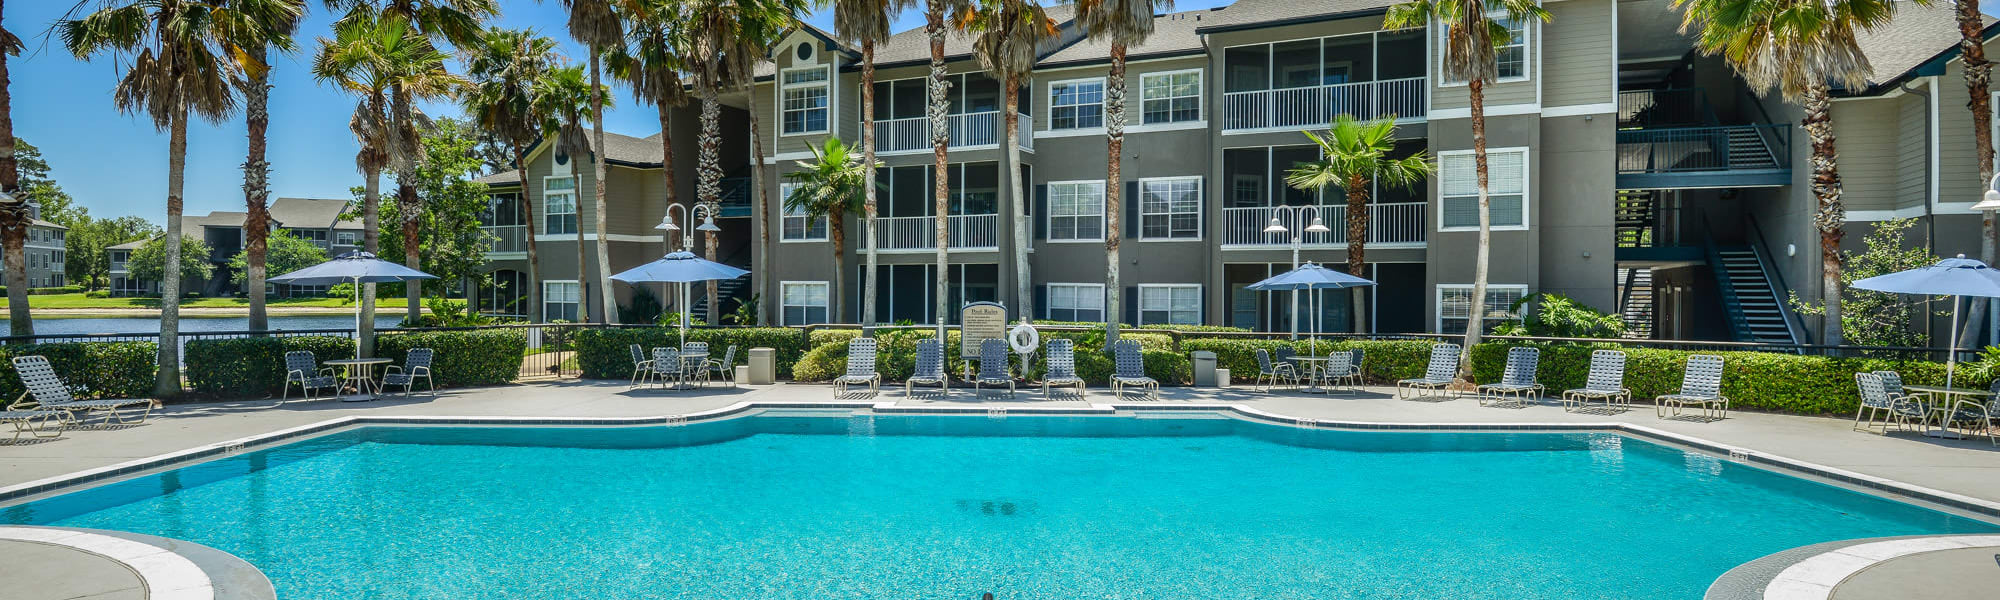 Privacy policy for Ocean Park of Ponte Vedra in Jacksonville Beach, Florida